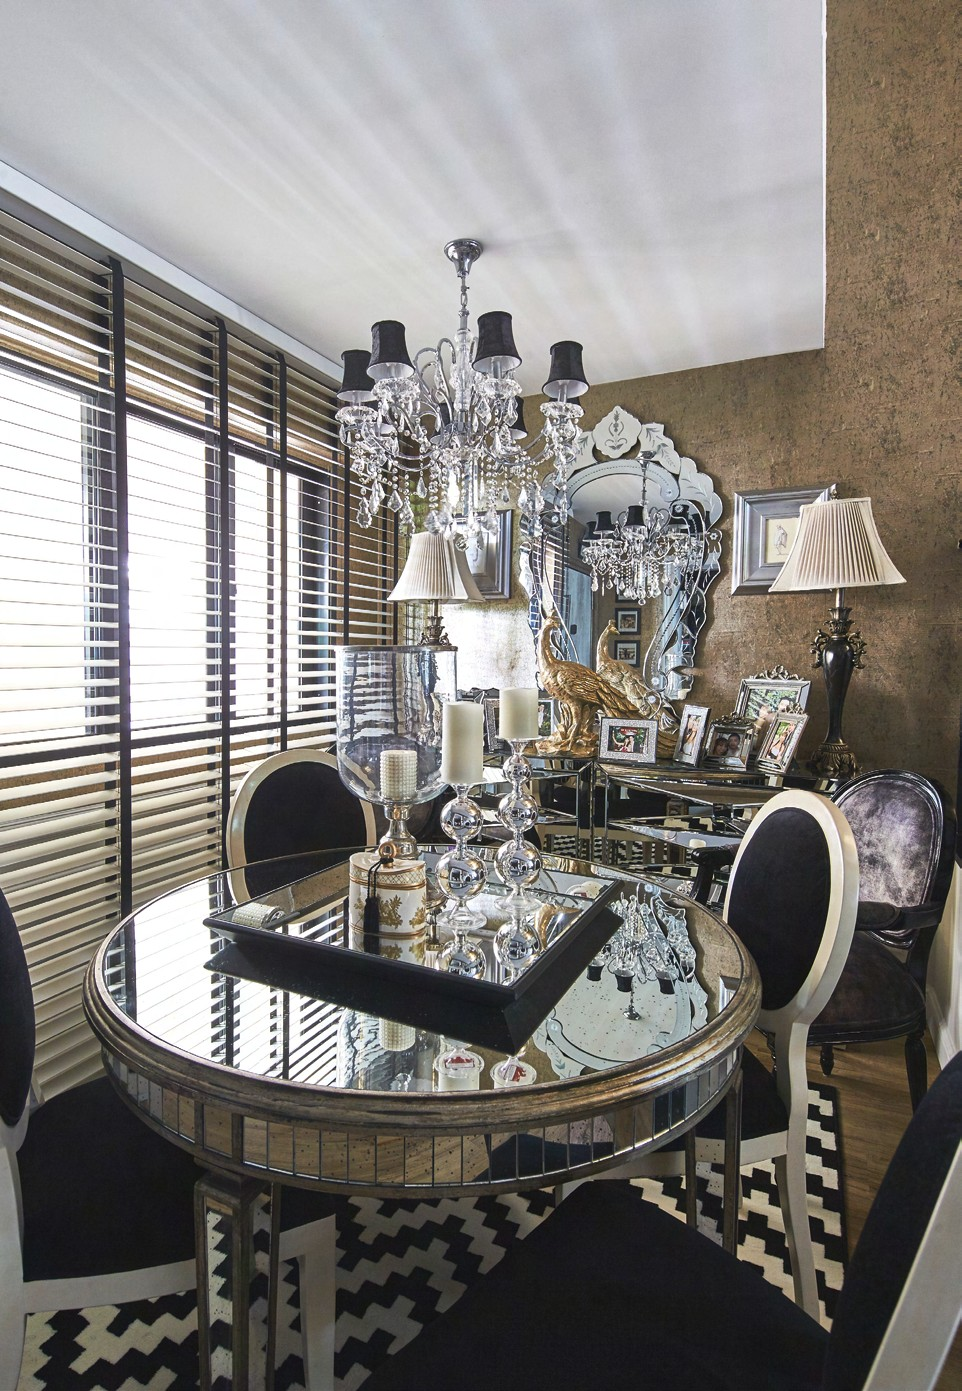 The dining room sits right by the entrance, and enjoys natural light from the common corridor outside. The light is also reflected off the mirrored surfaces of the dining table, which is complemented by black-and-white round-back chairs. Behind, a sideboard filled with the couple's photos and knick-knacks give the home a personal touch.